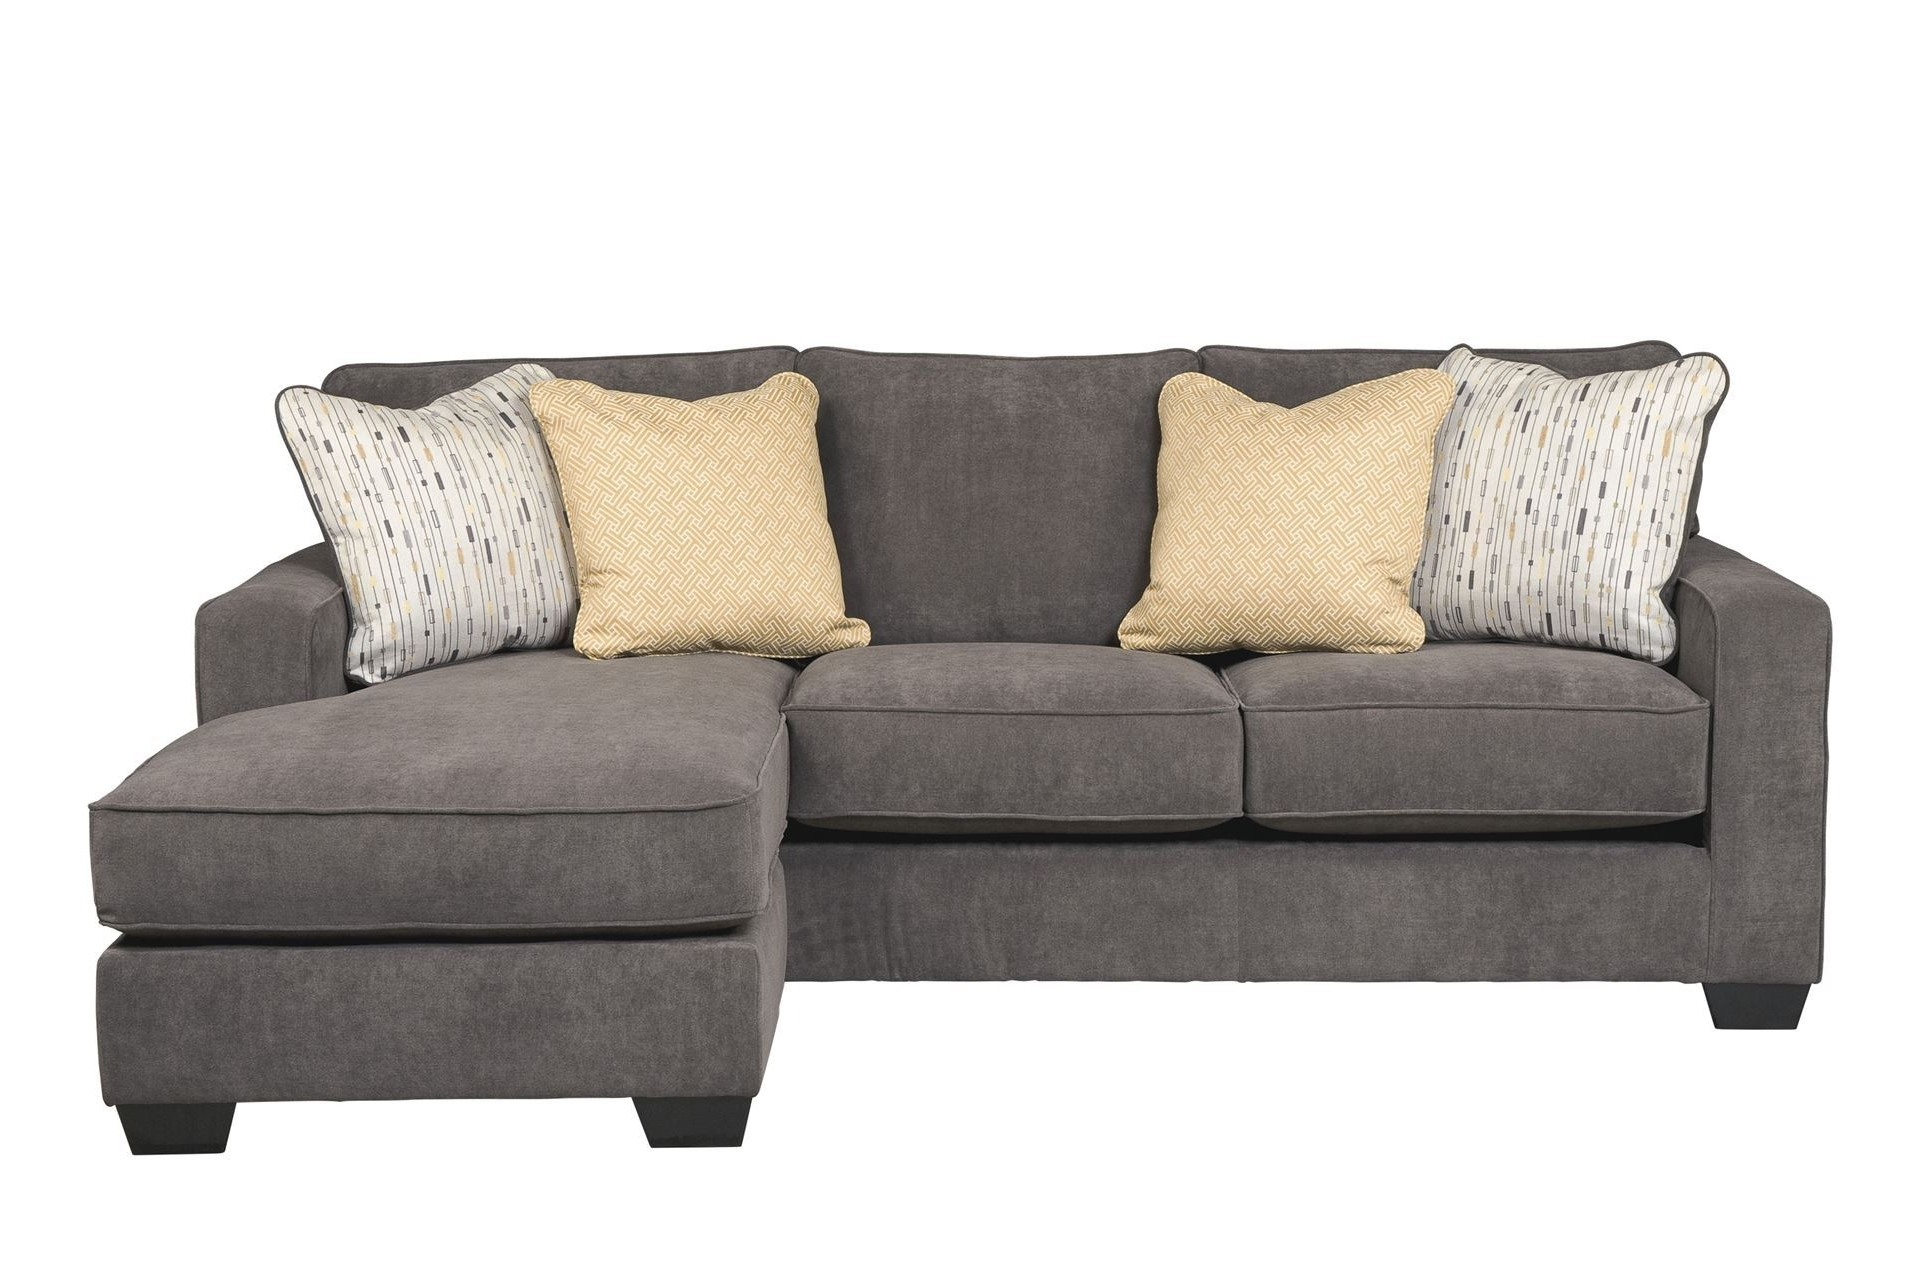 Sofas With Chaise Lounge With Regard To Widely Used Couch With Chaise Lounge – Decofurnish (View 11 of 15)